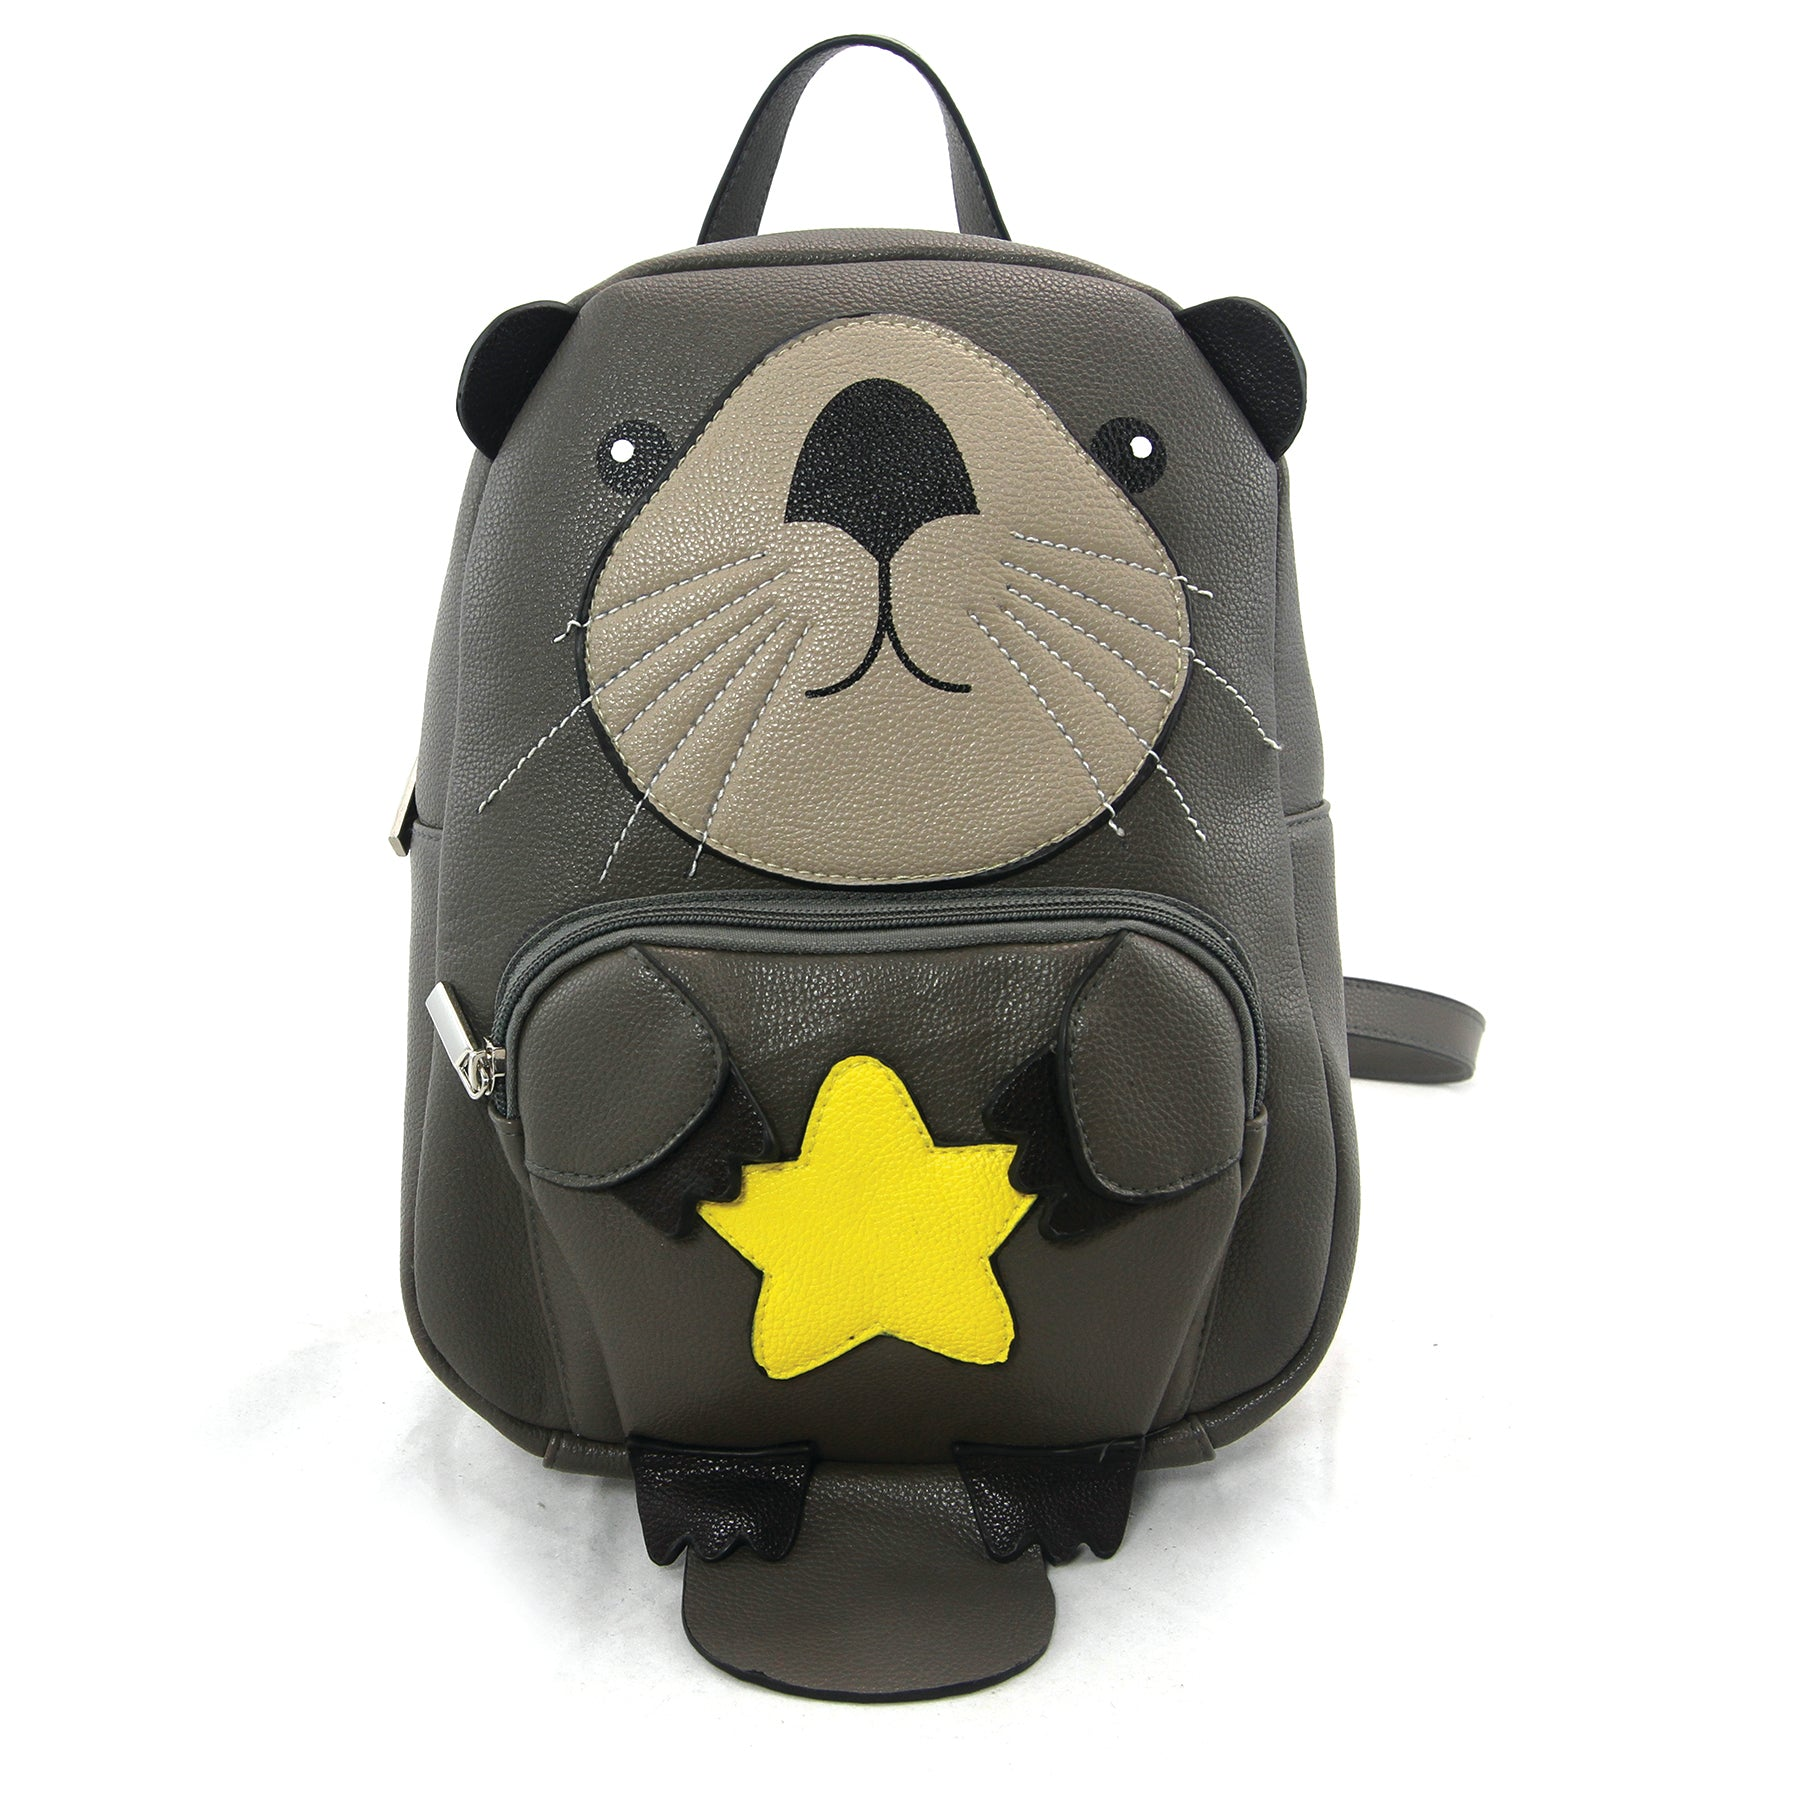 Mini Otter Backpack in Vinyl Material front view